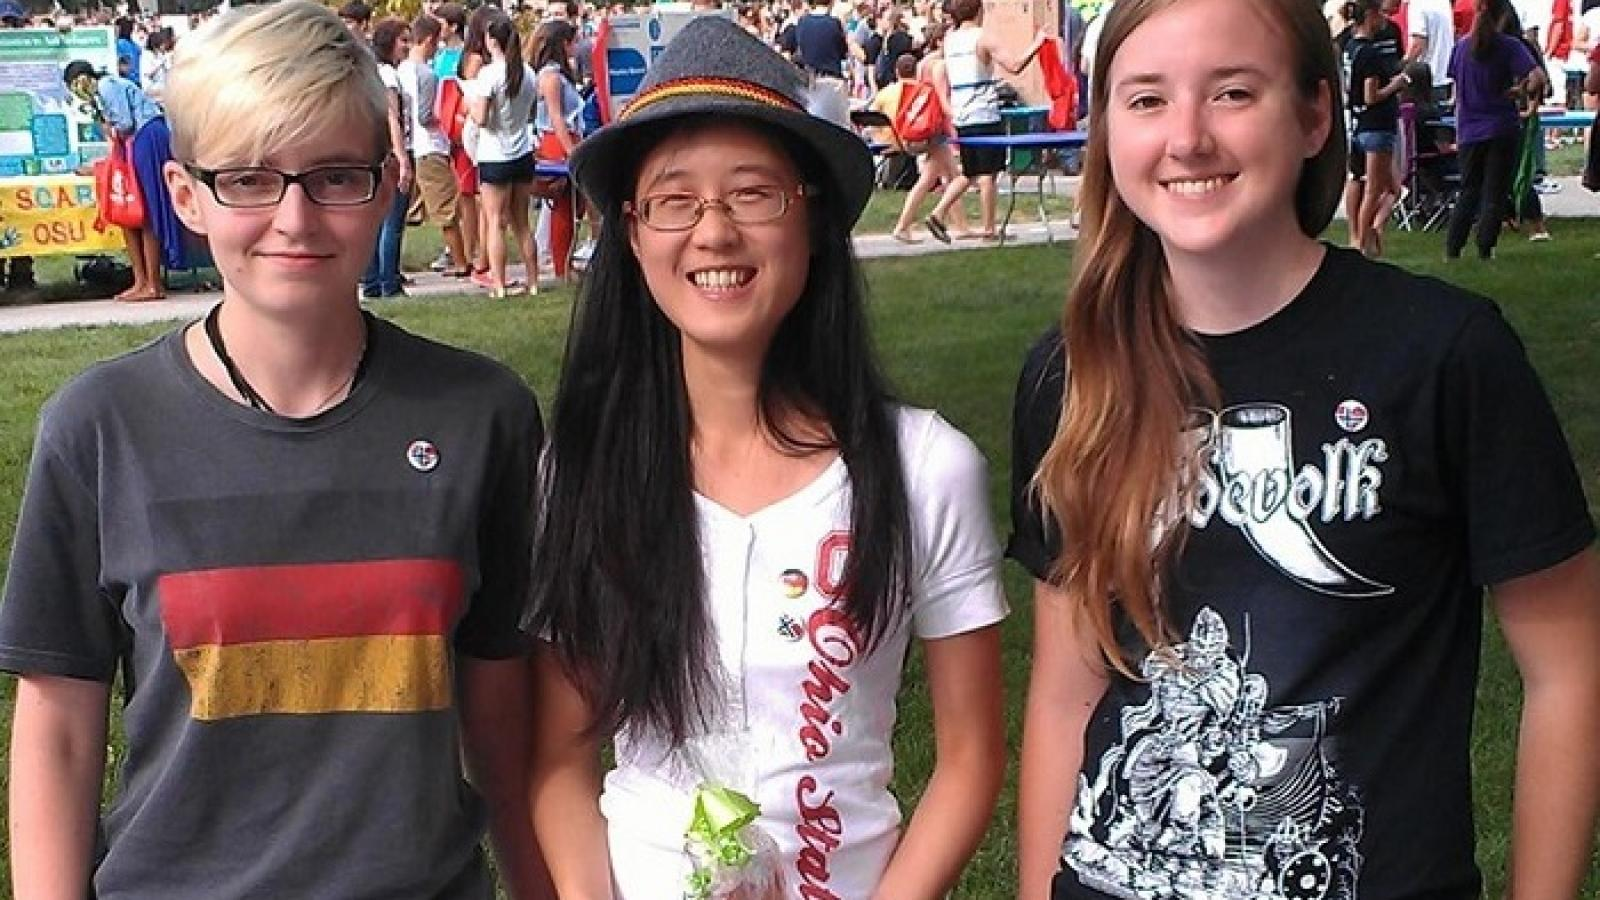 Three members of the OSU German Club on the Oval